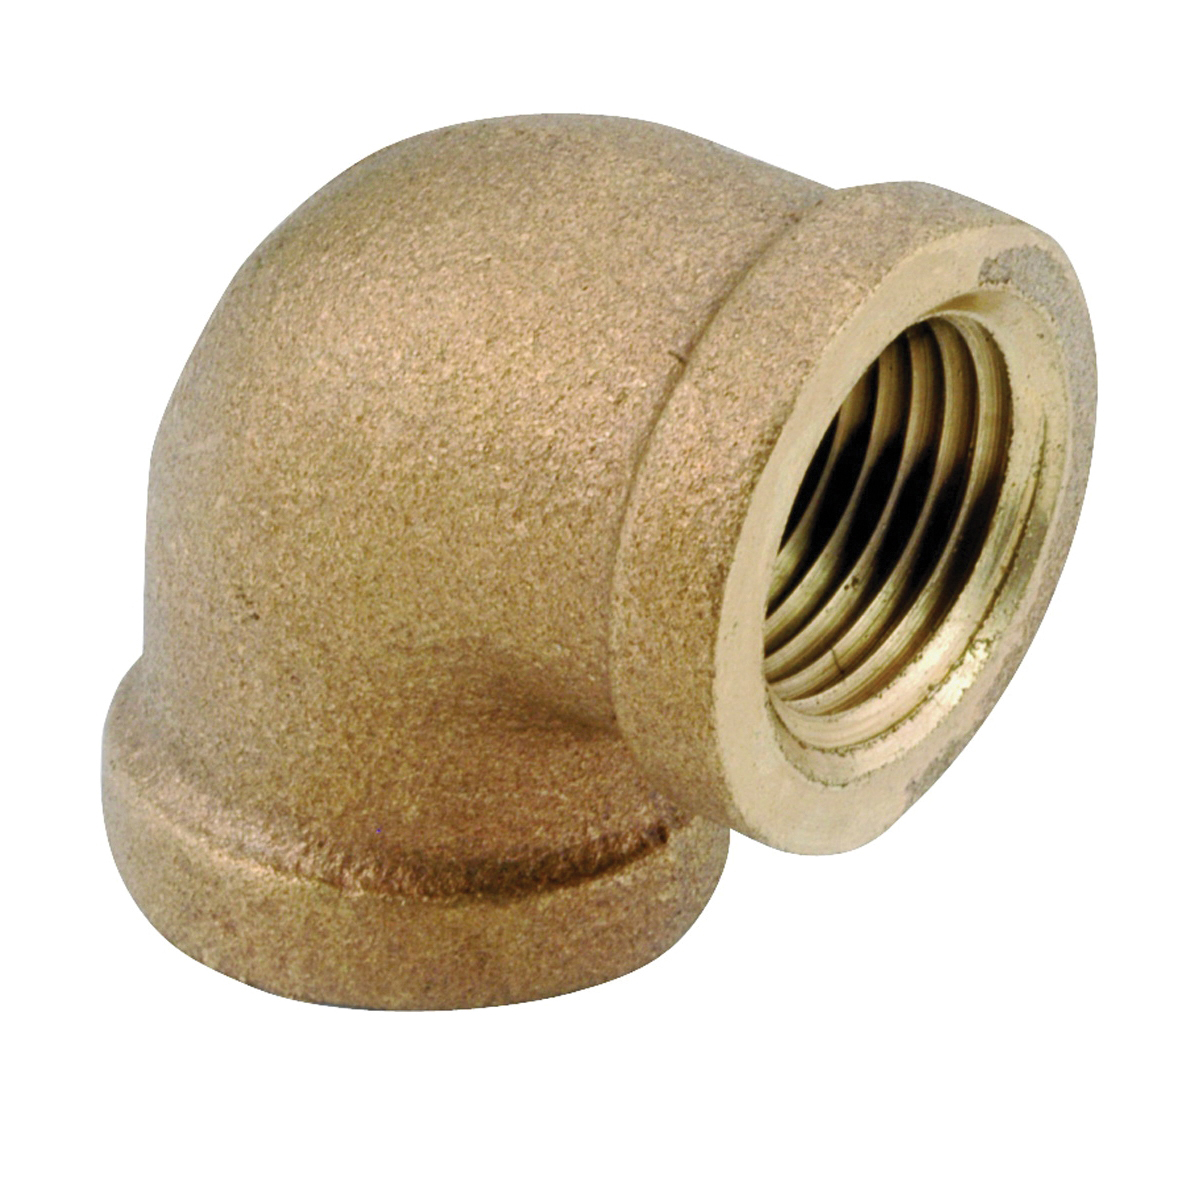 Picture of Anderson Metals 738100-08 Pipe Elbow, 1/2 in, FIP